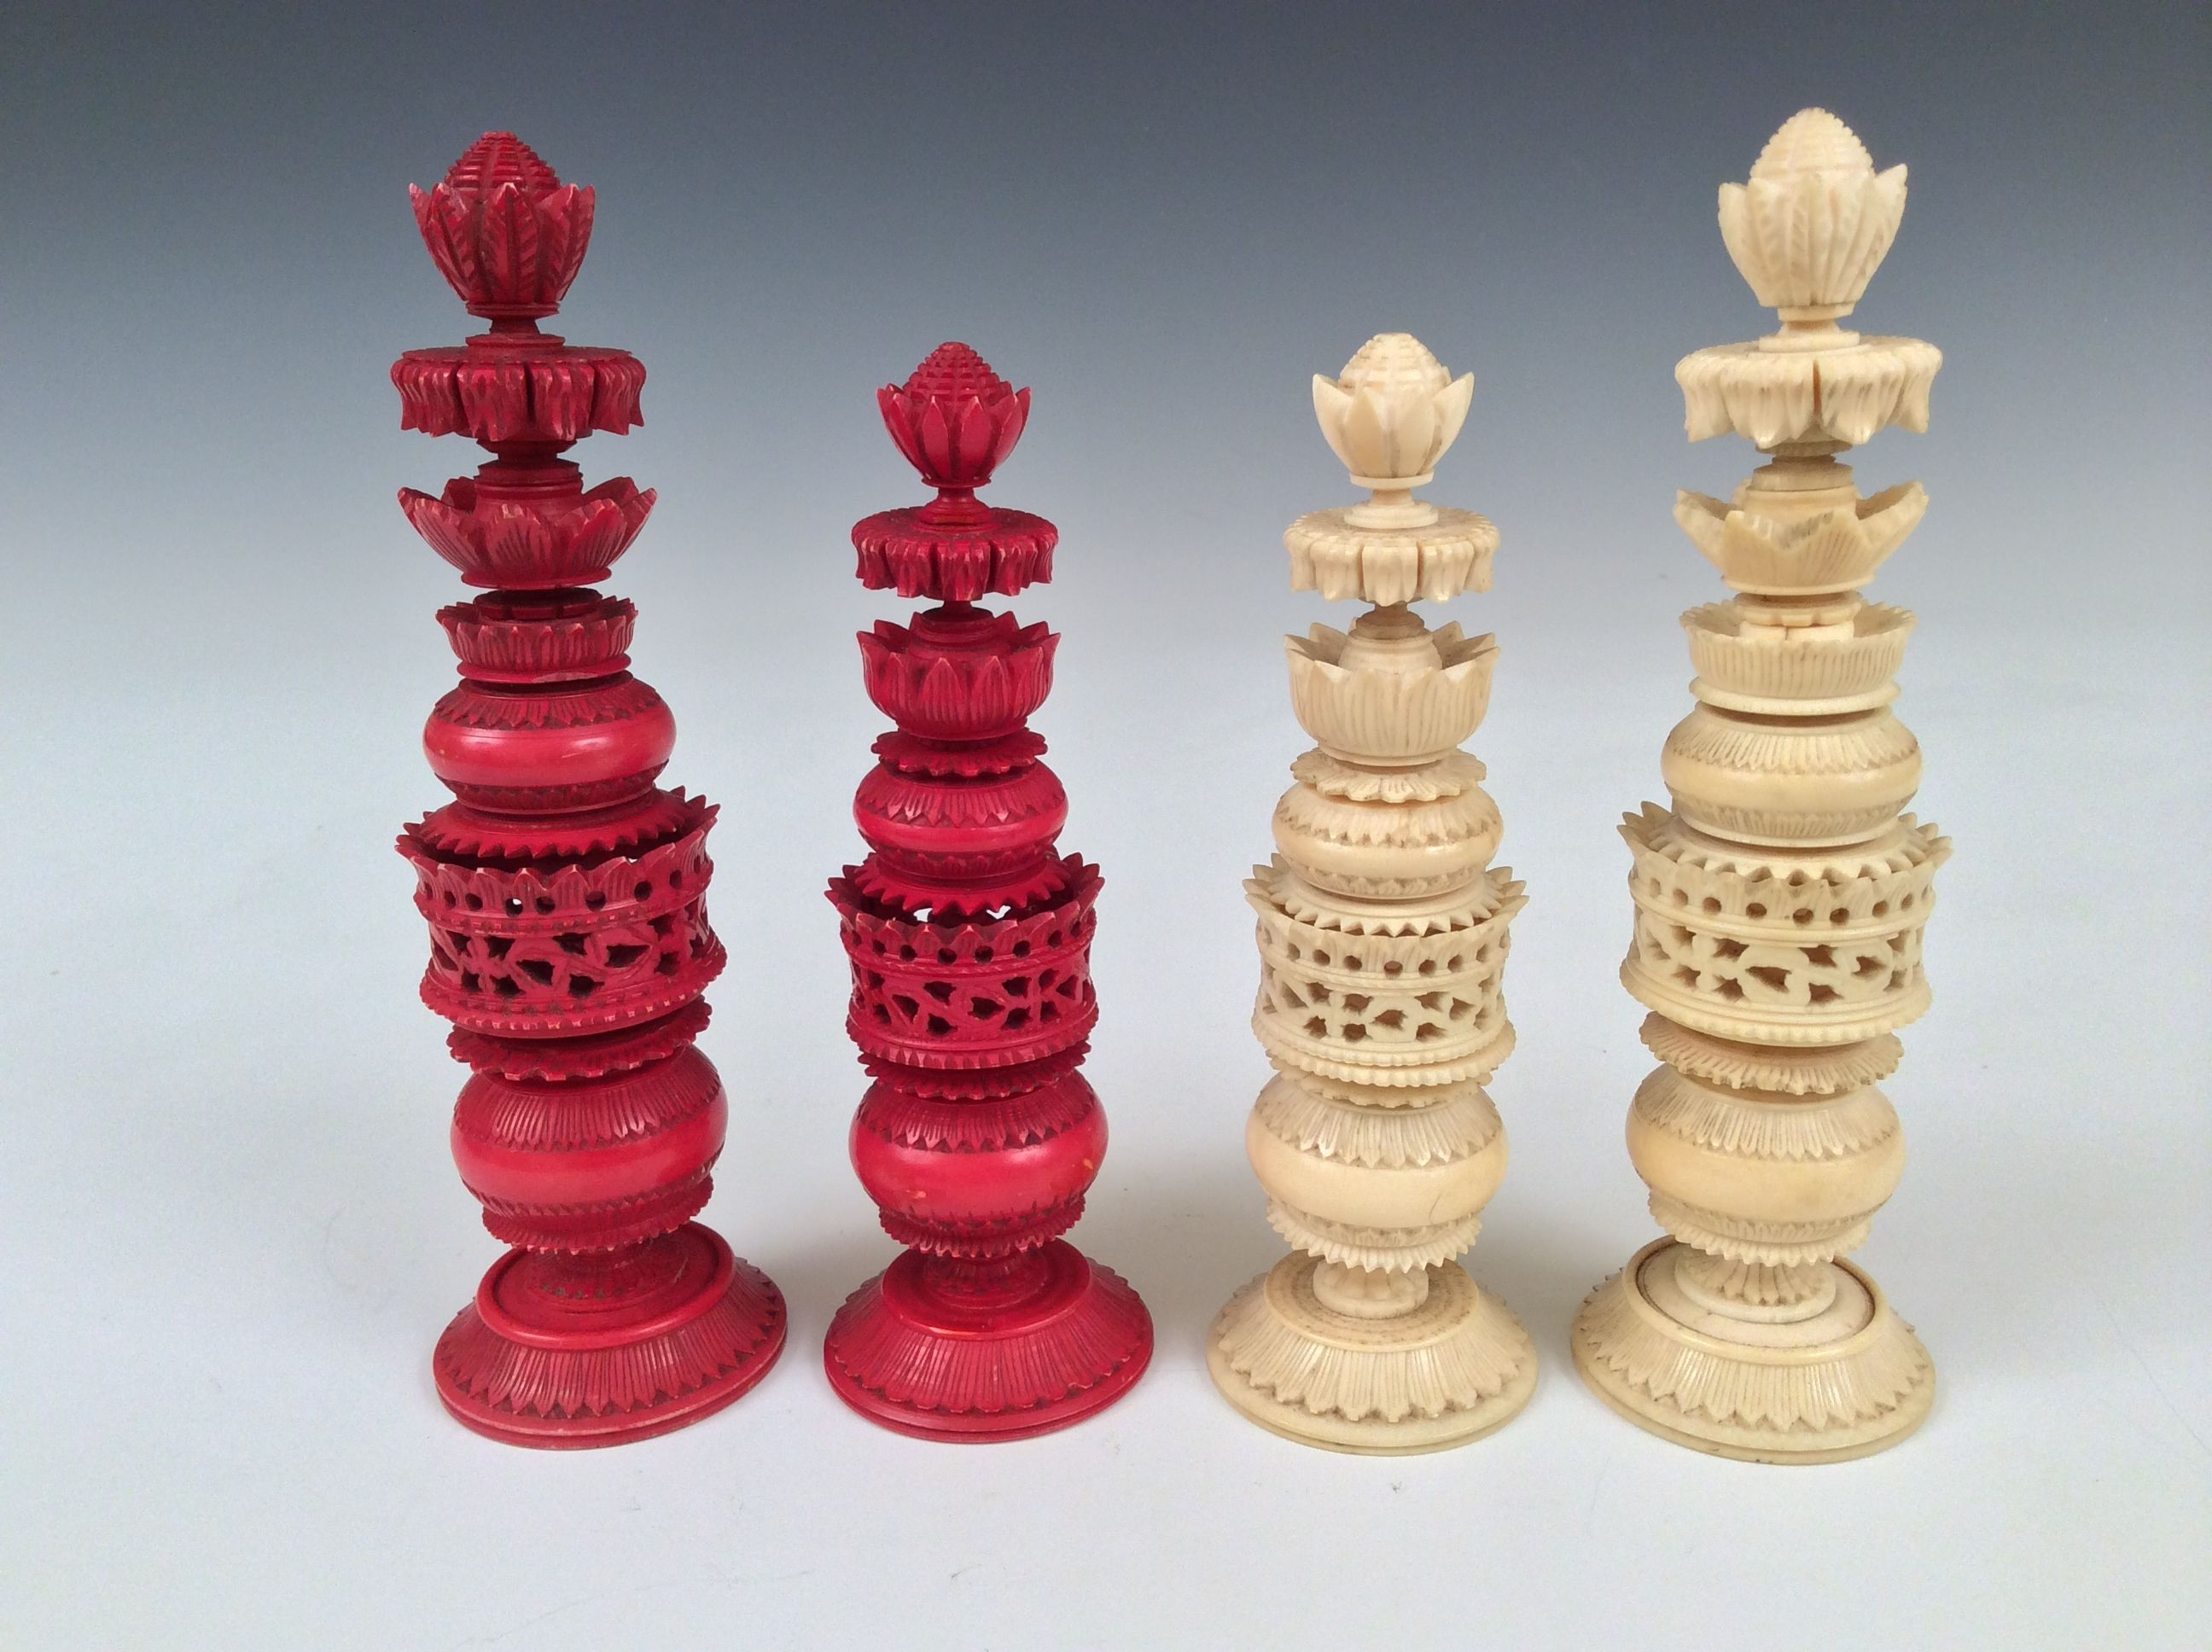 Antique anglo indian ivory chess set style of the world famous pepys sets - Collectible chess sets ...